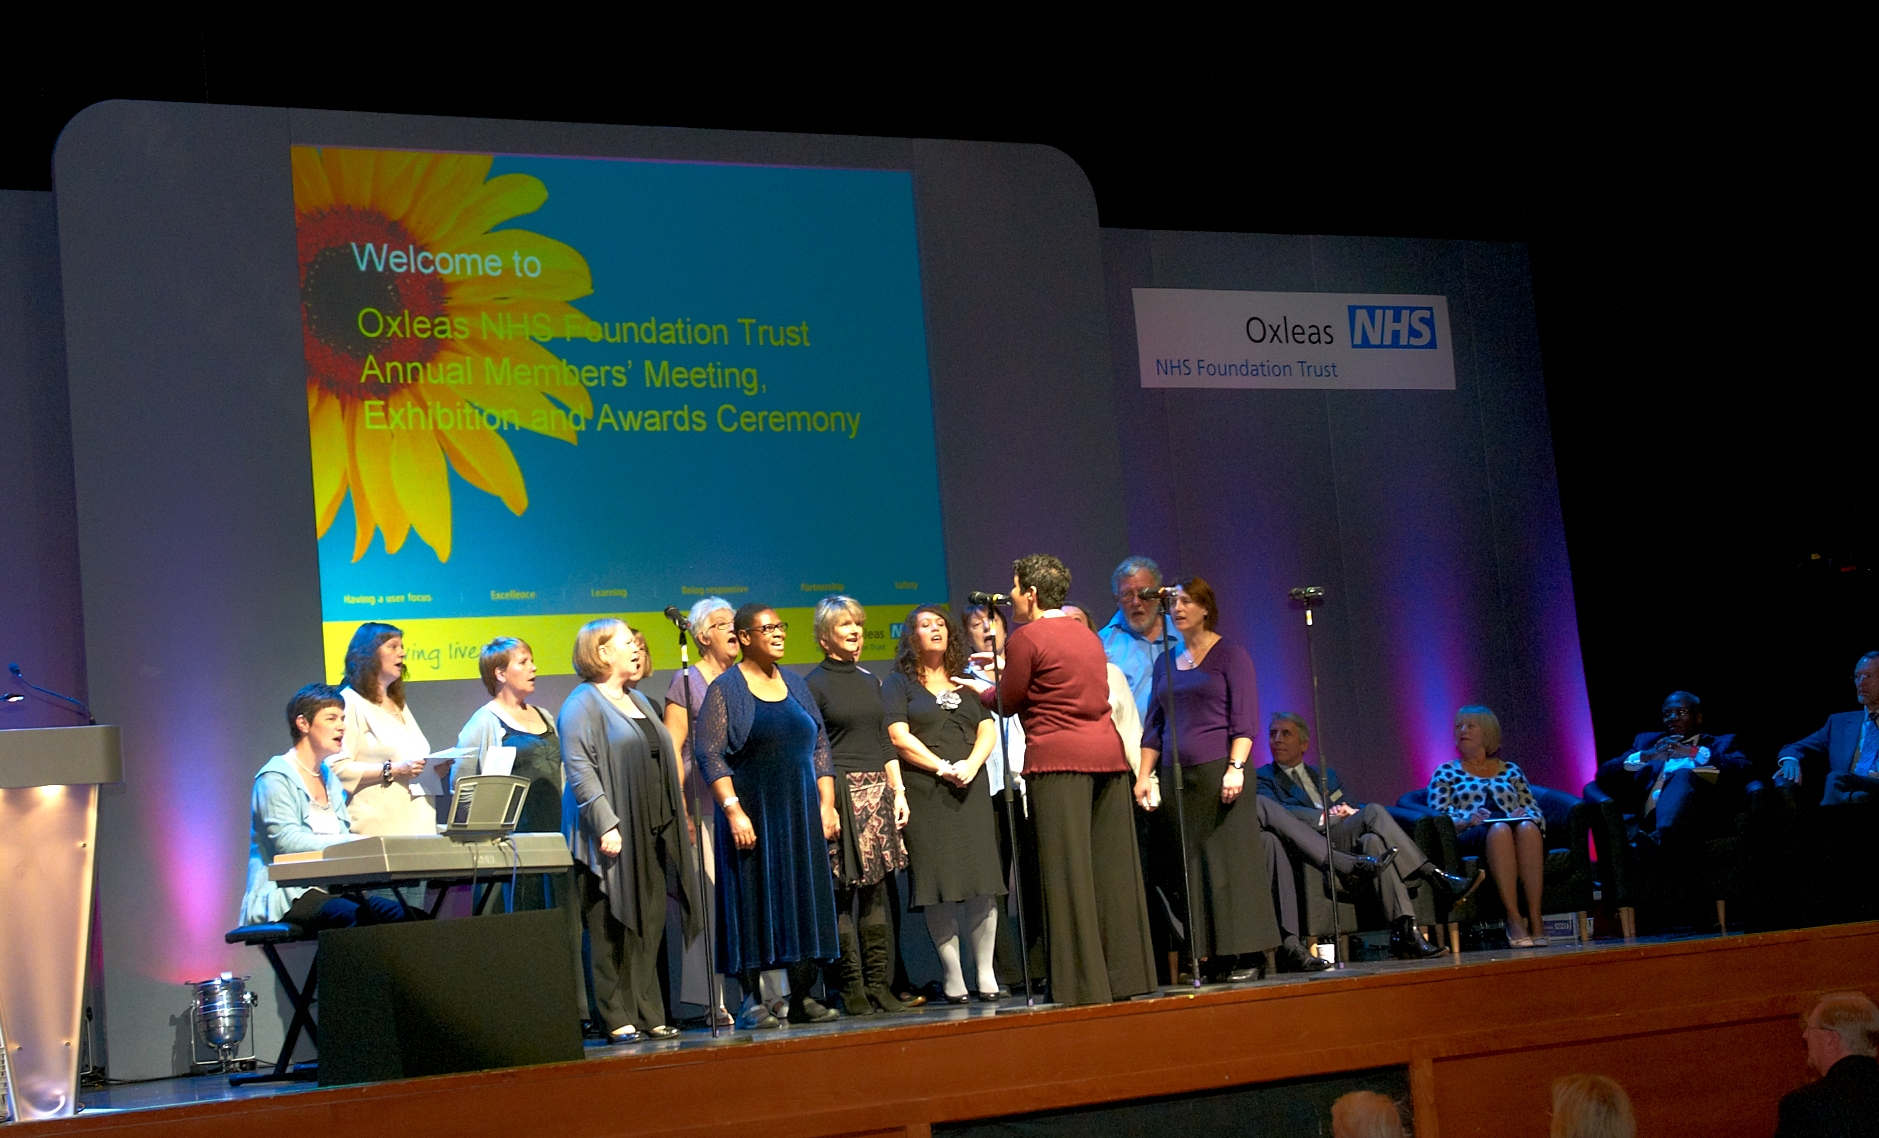 1. The Harmony Choir open the 2010 Oxleas Annual Members' Meeting